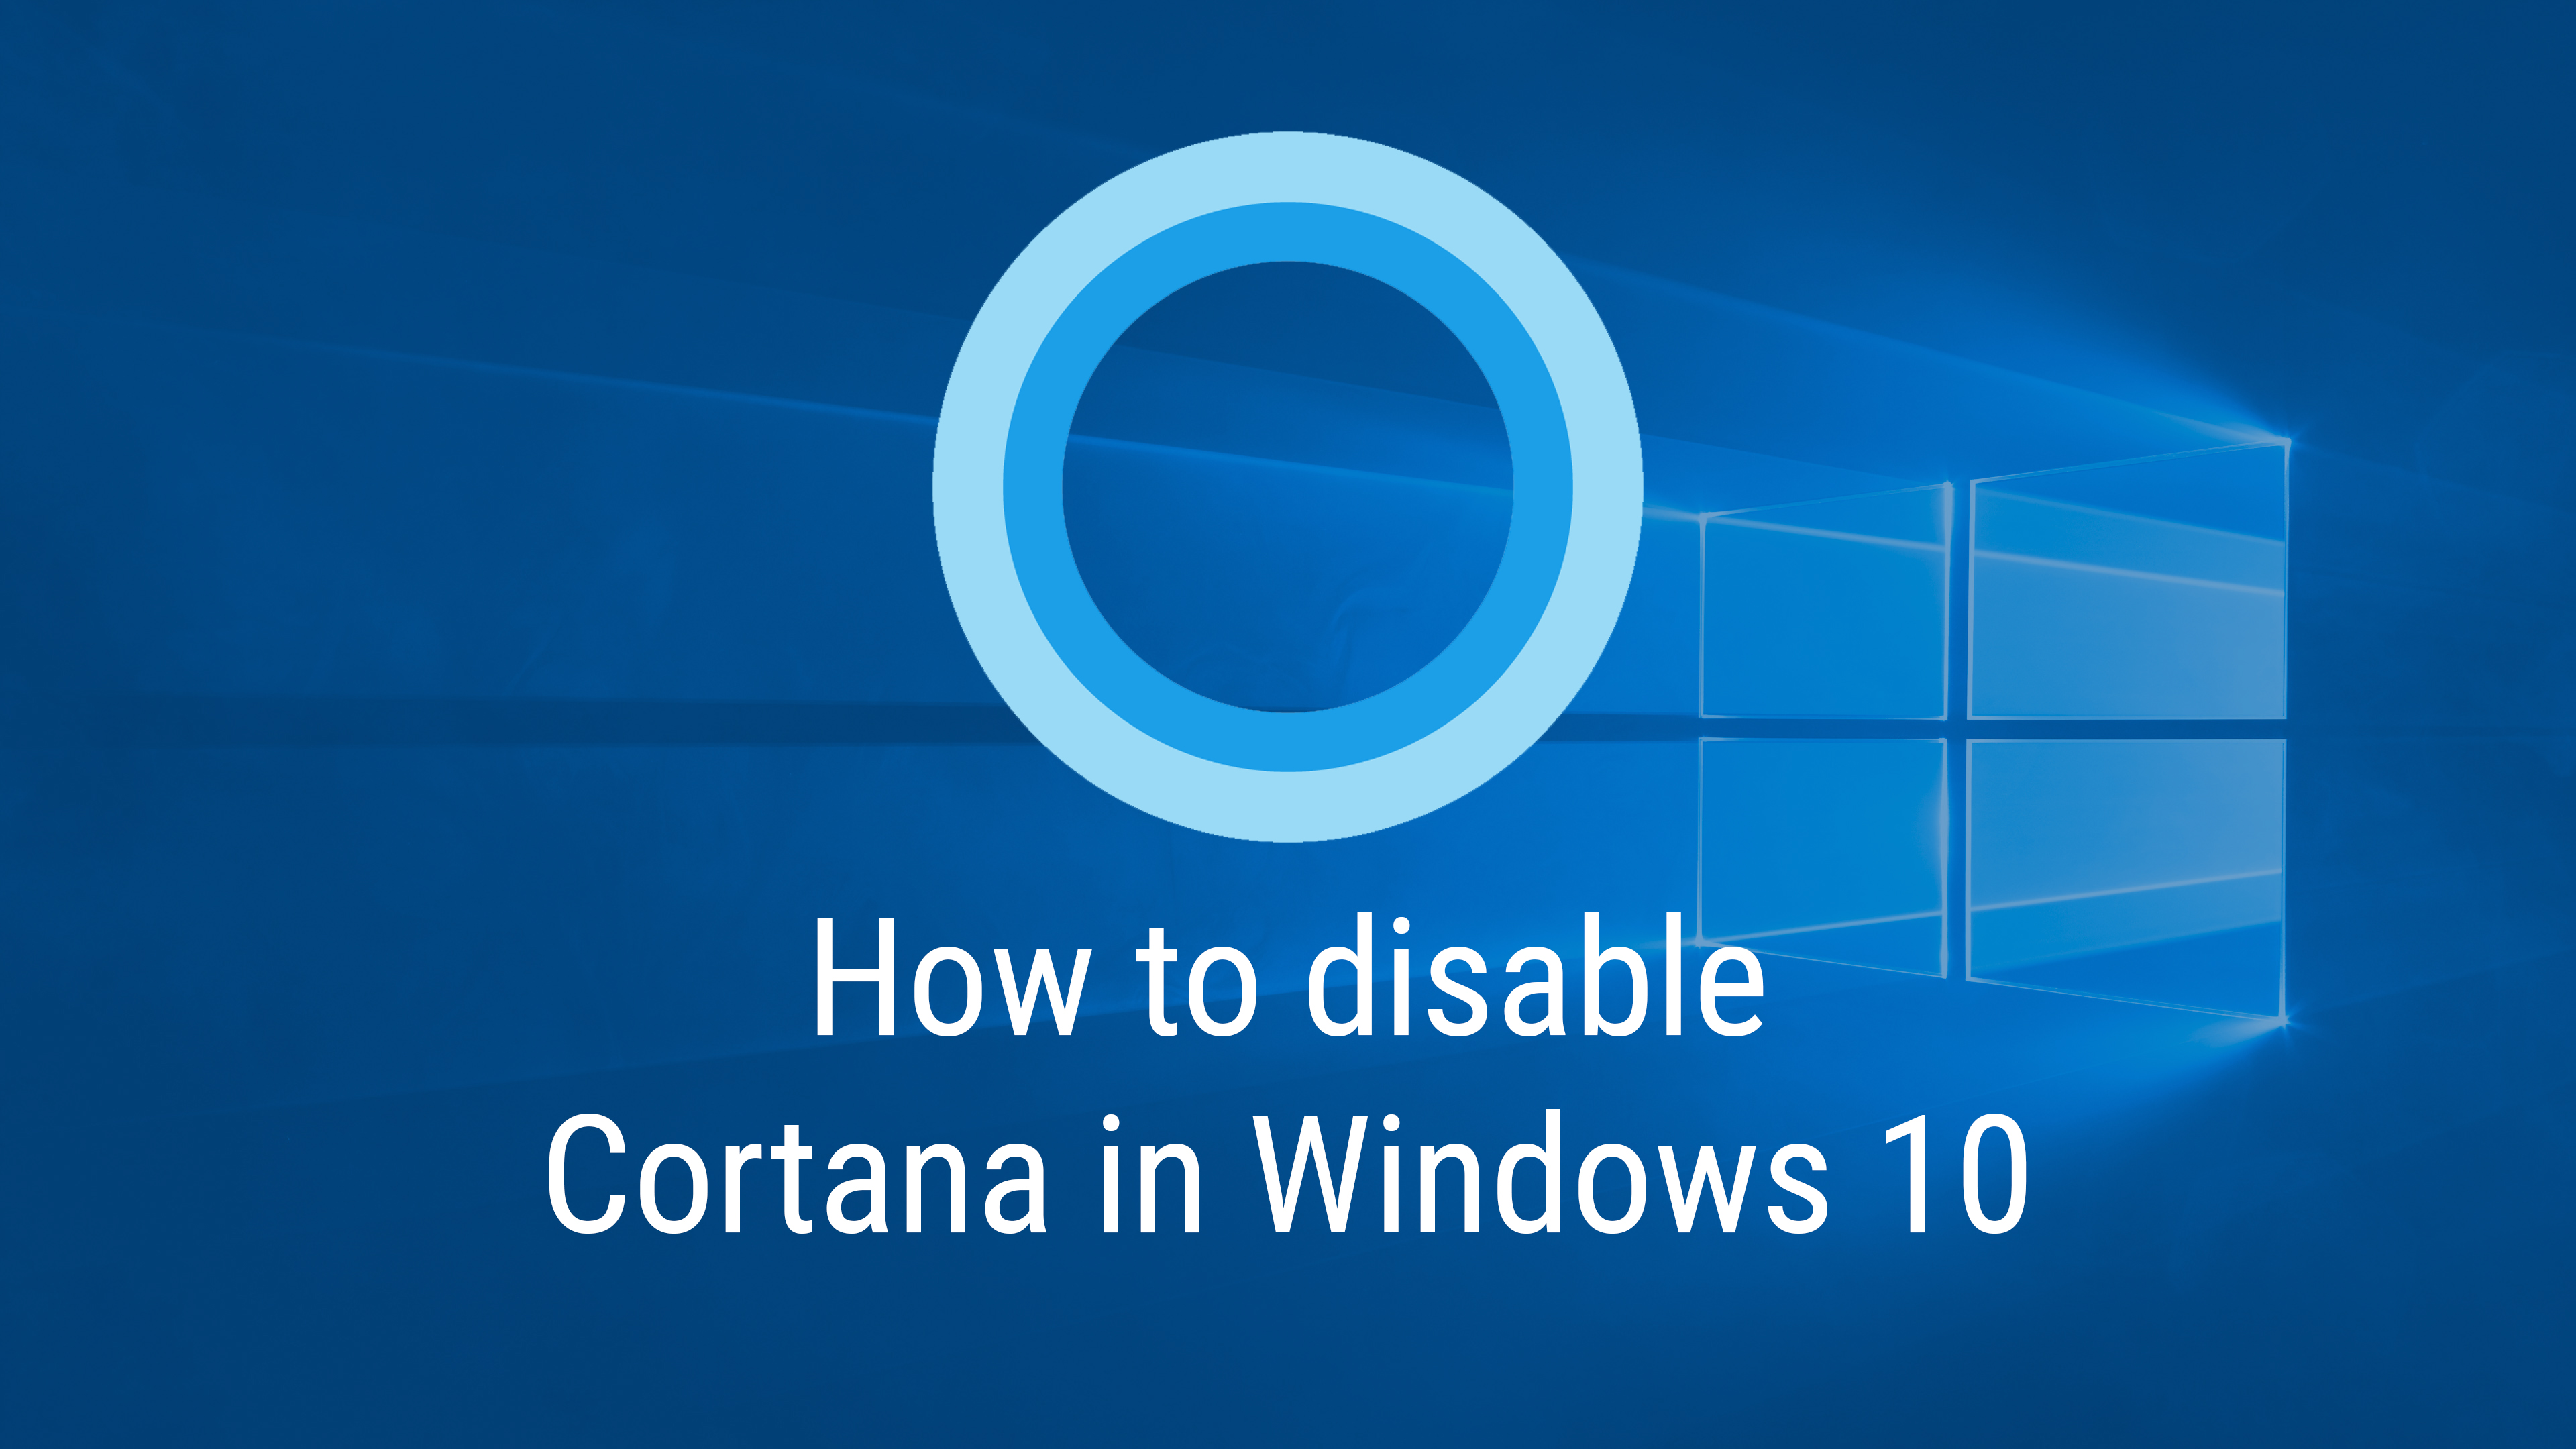 Disable Cortana